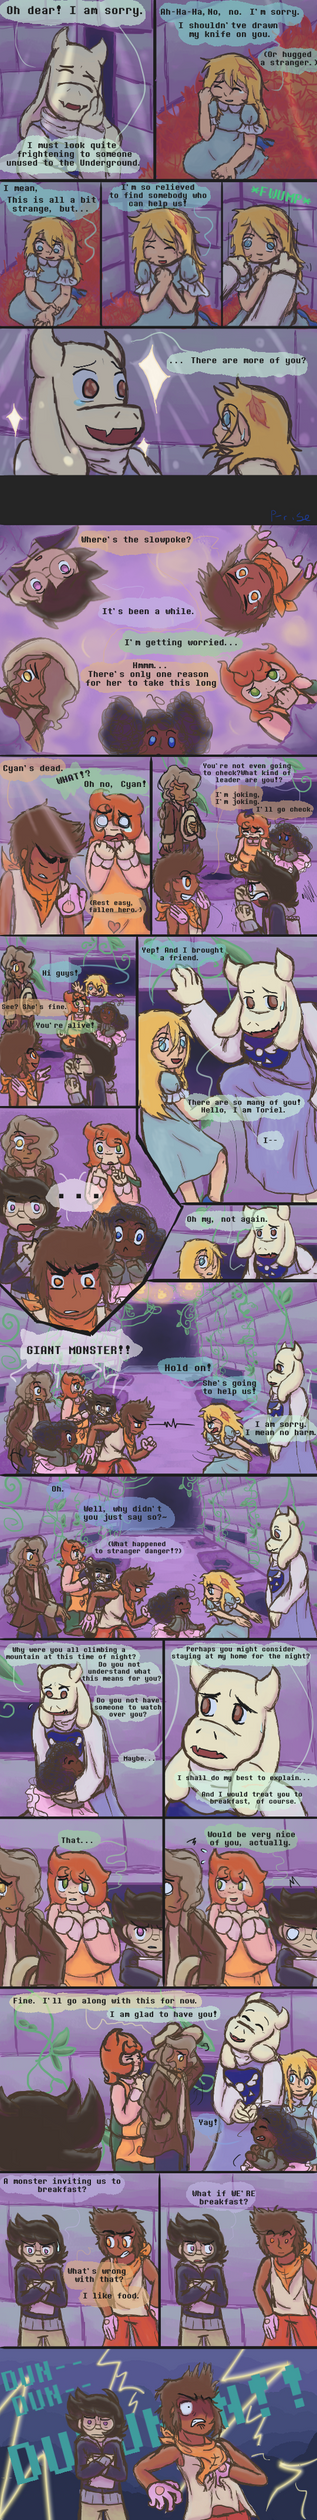 TSWFBY-page 8 by Passionrising